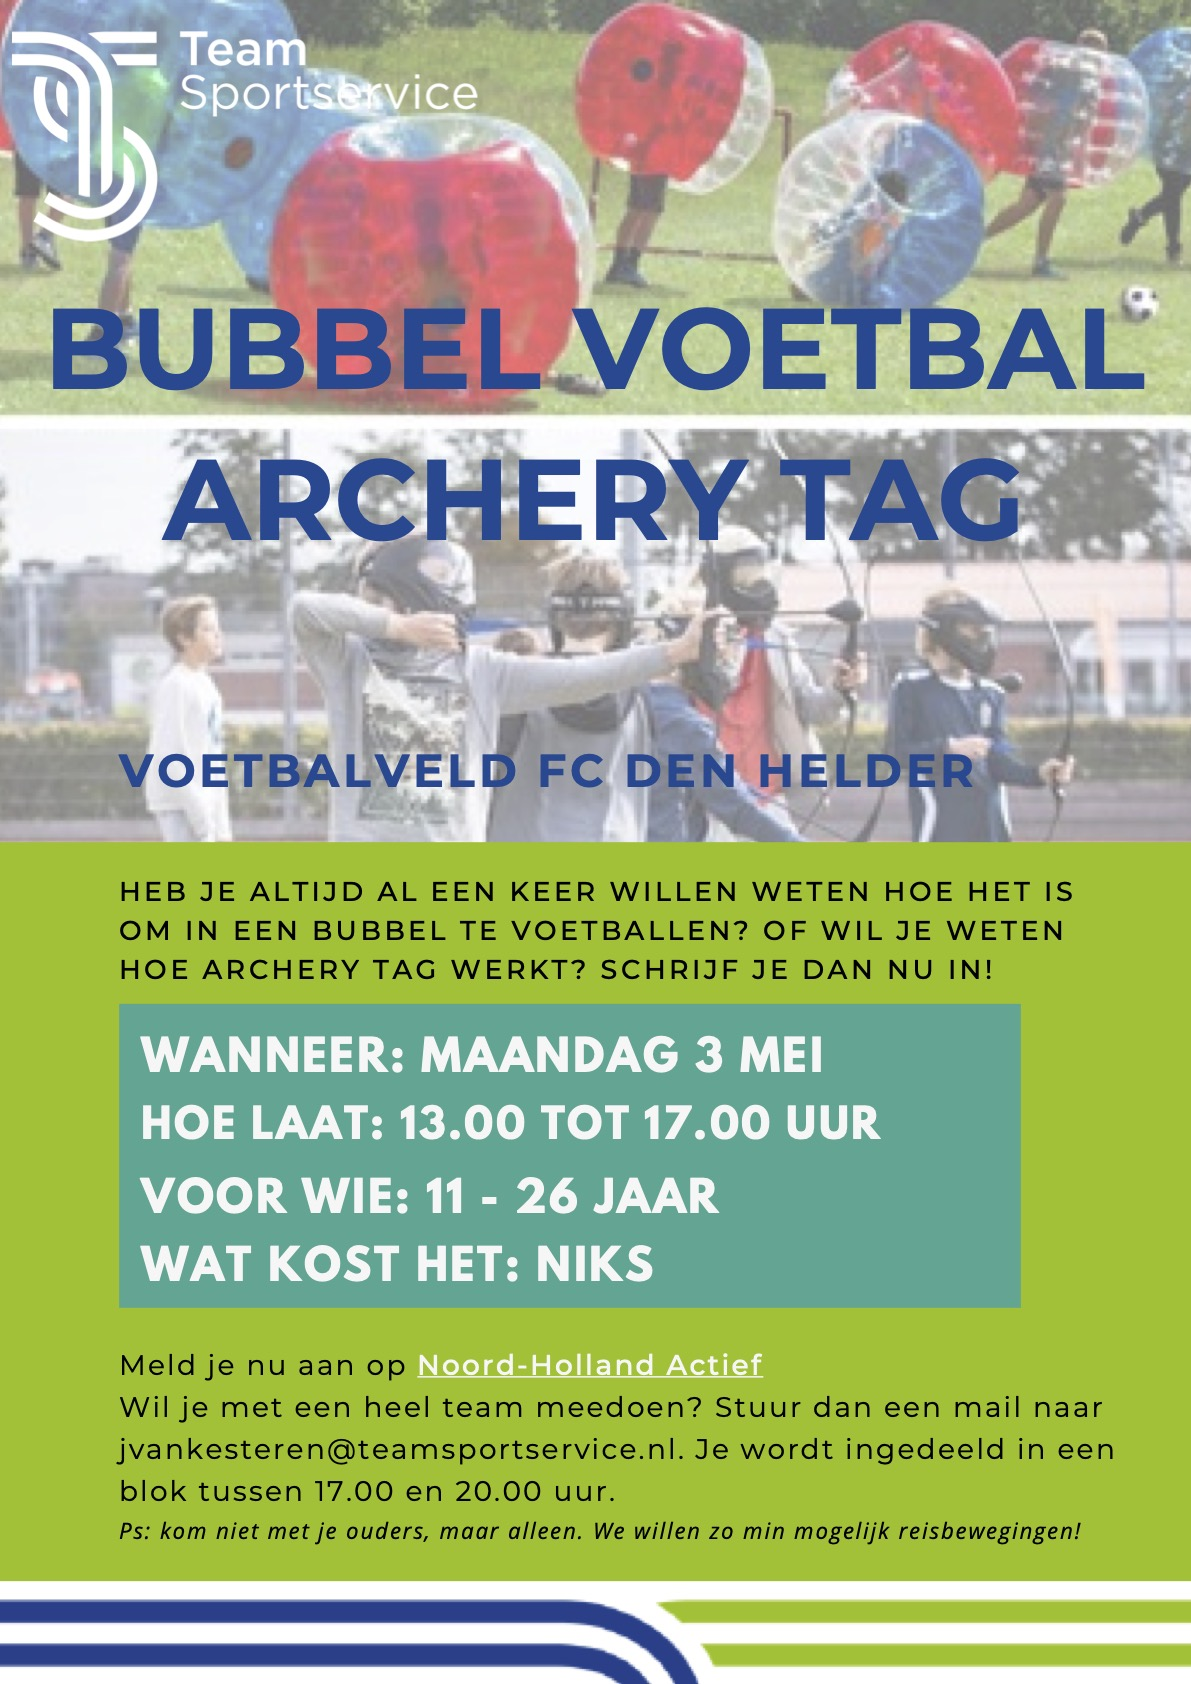 Bubbel voetbal-Archery Tag